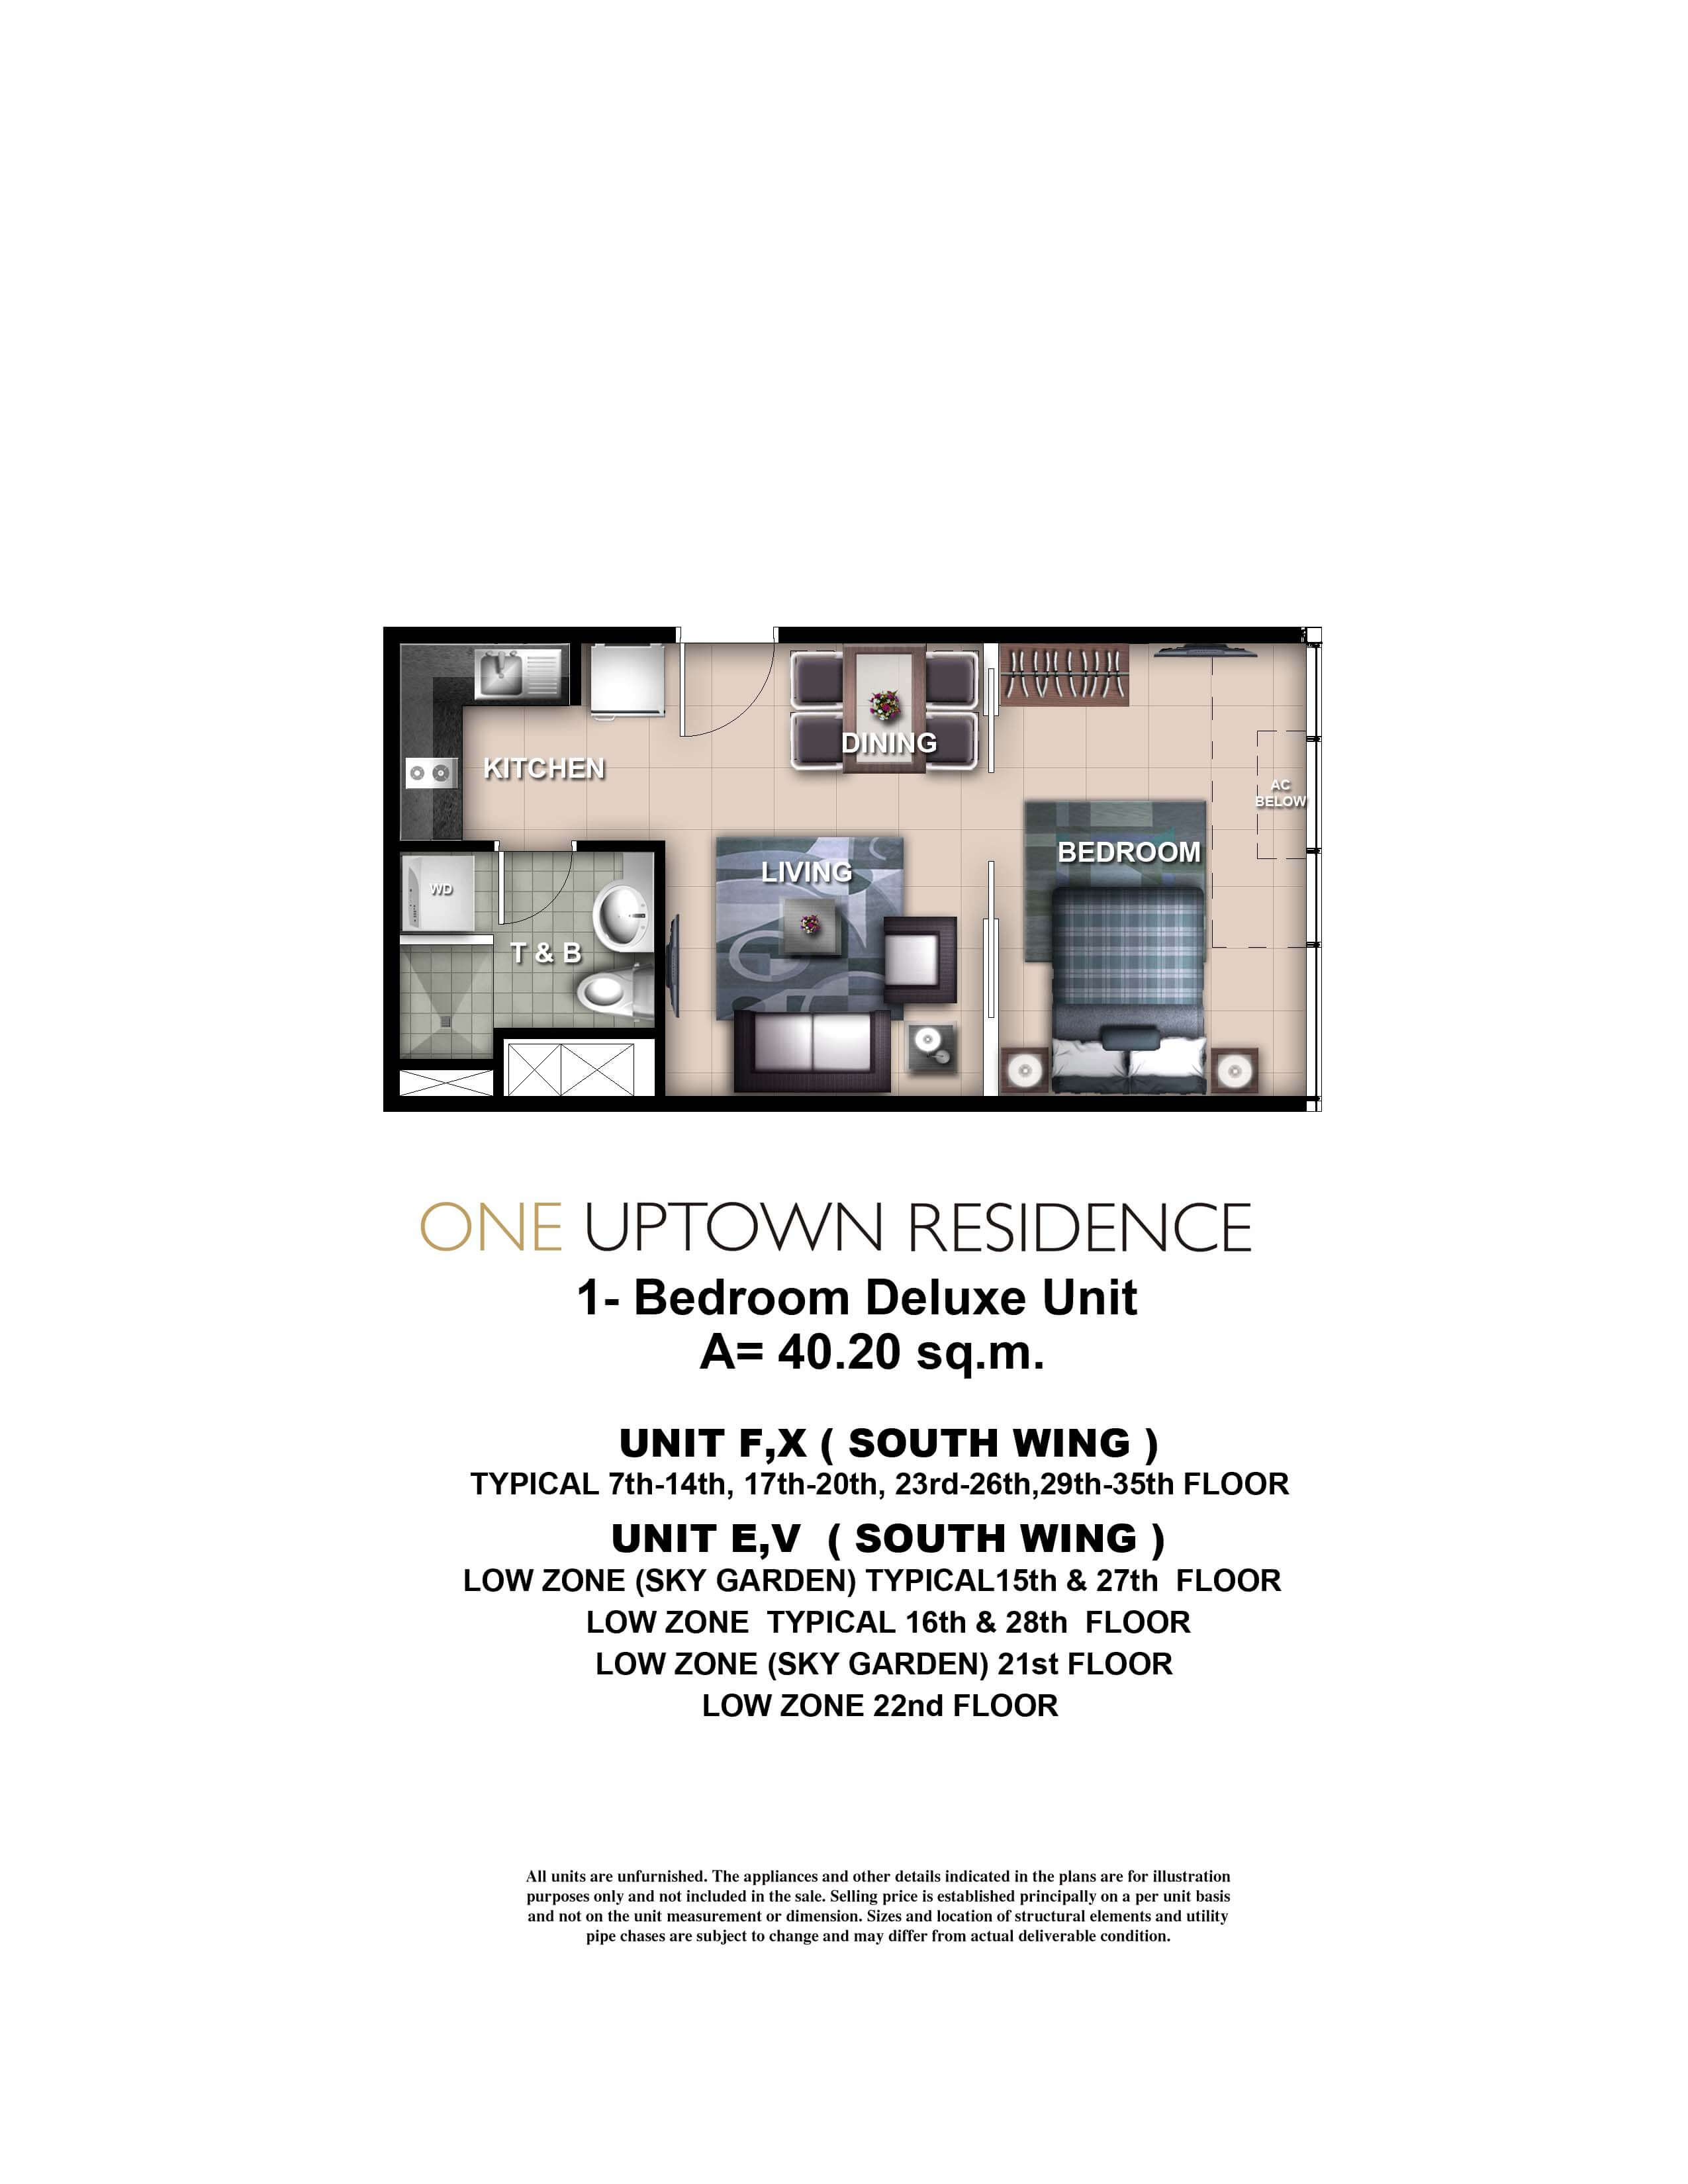 One Uptown Residence Unit Layout 1BR (40.2sqm)